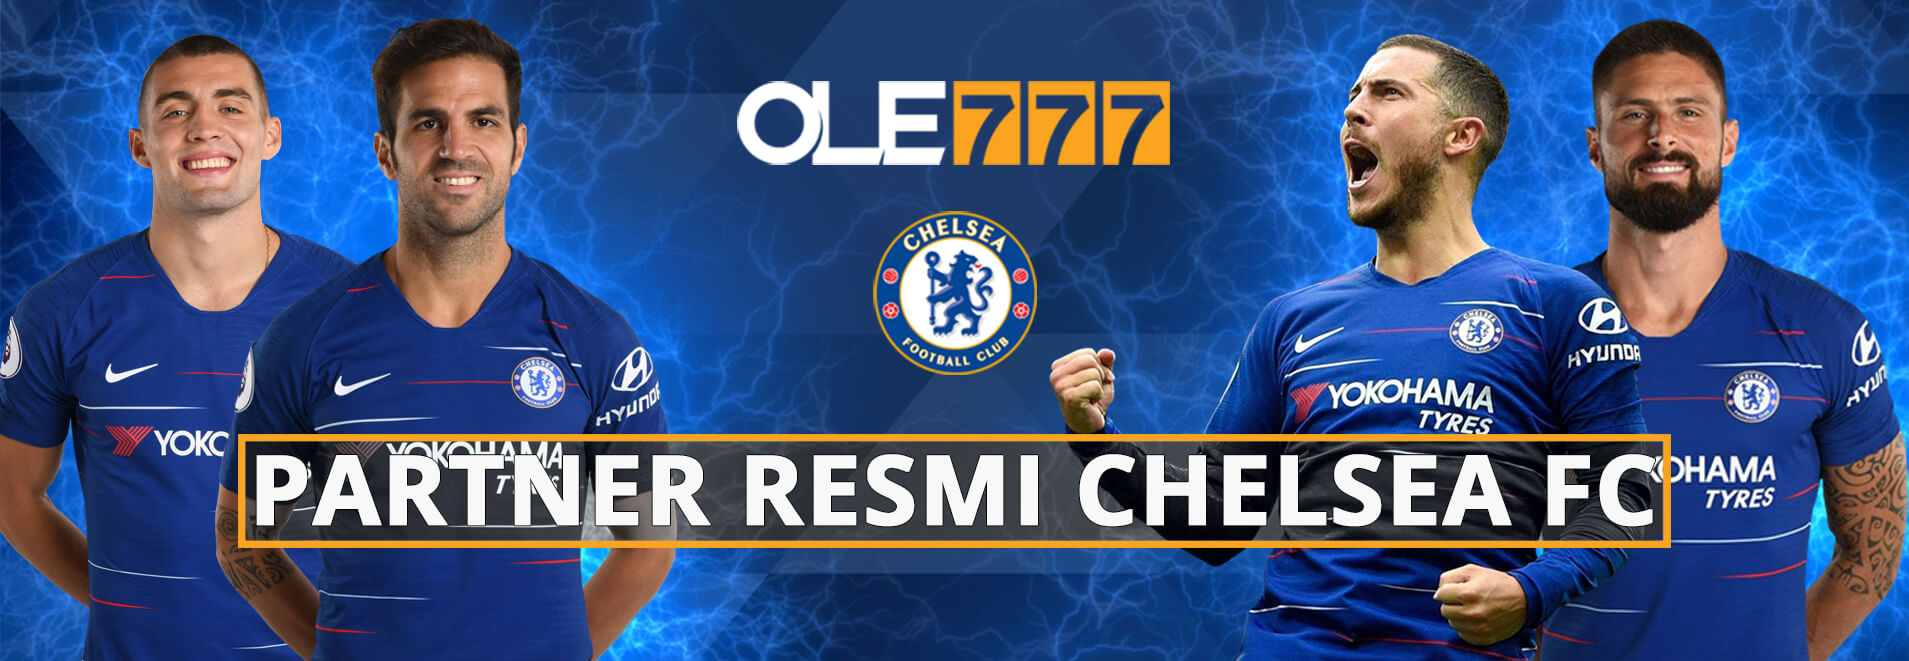 <a href='https://www.chelseafc.com/in/about-chelsea/about-the-club/club-partners/ole777' class = 'btn btn-warning' >SELENGKAPNYA</a>